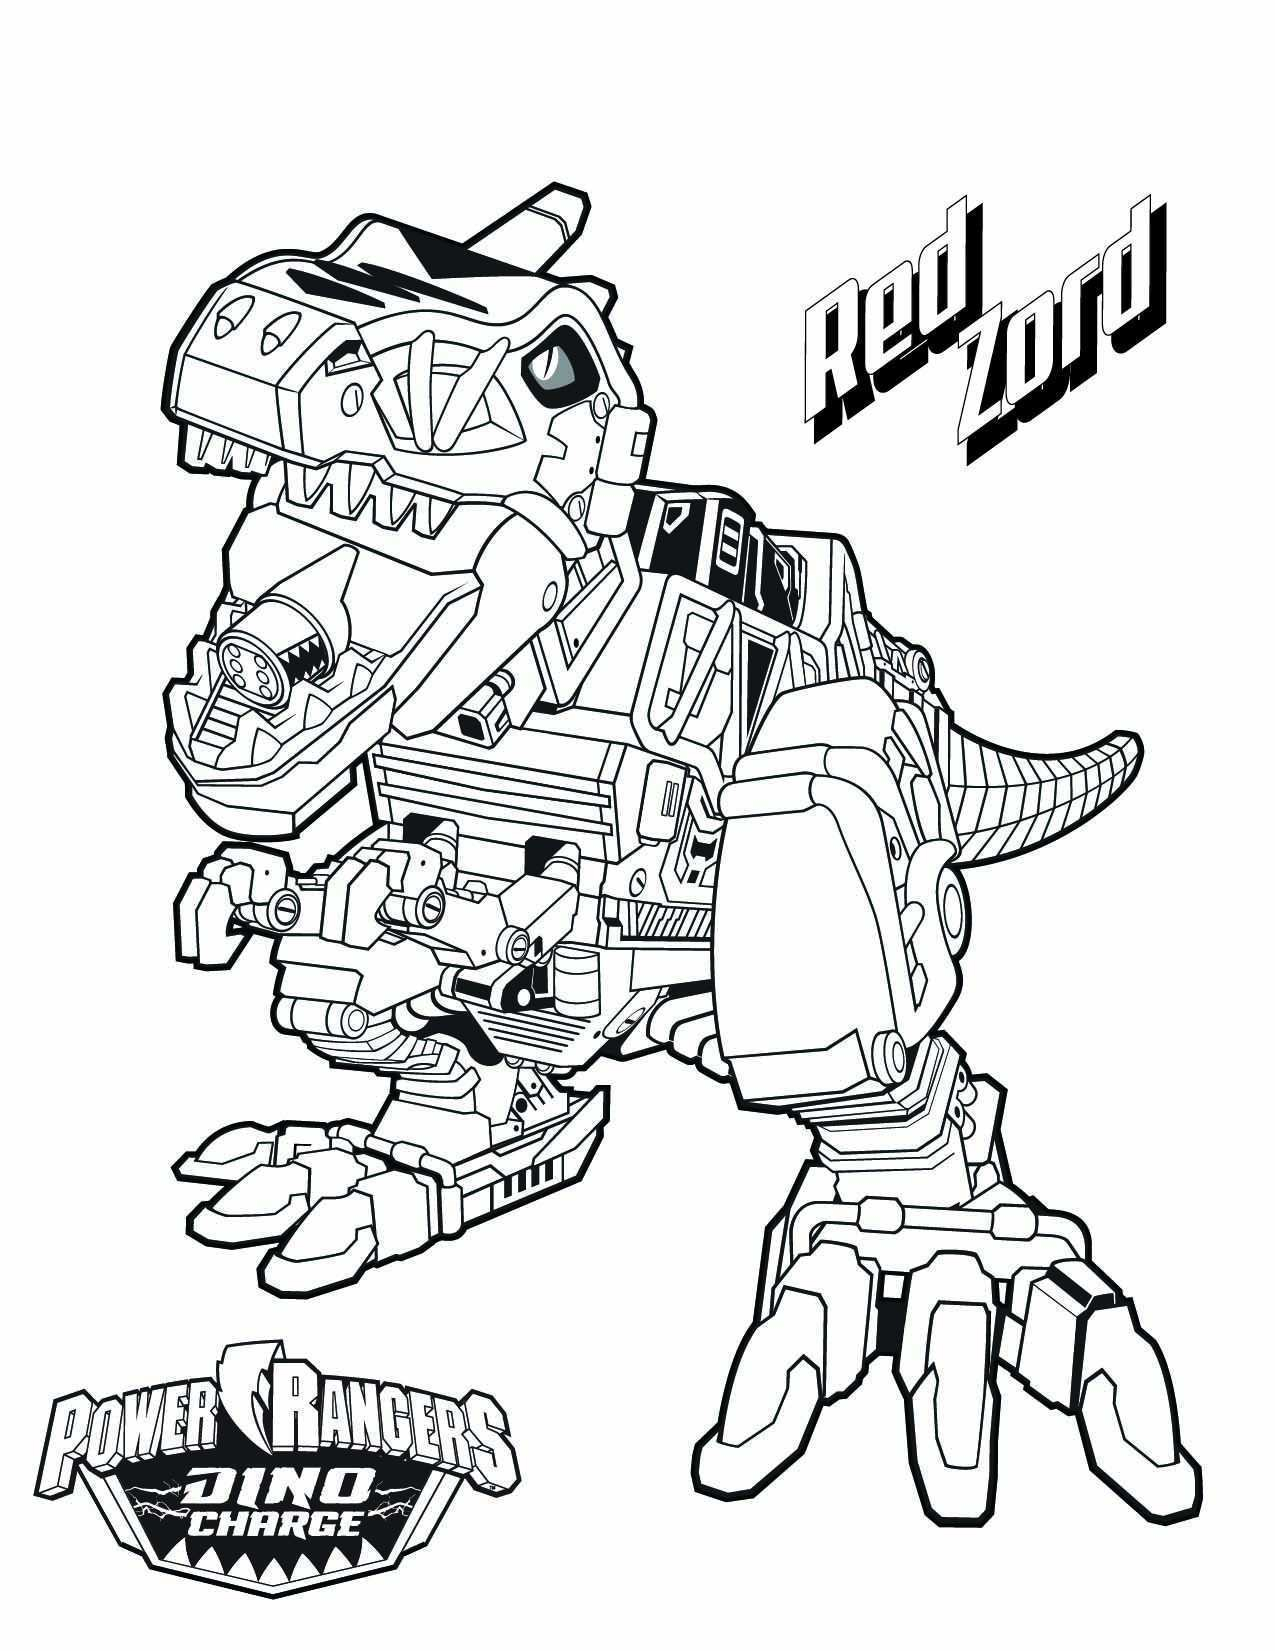 Power Rangers Rpm Coloring Pages From Power Rangers Jungle Fury Lily Wiring Diagram Database